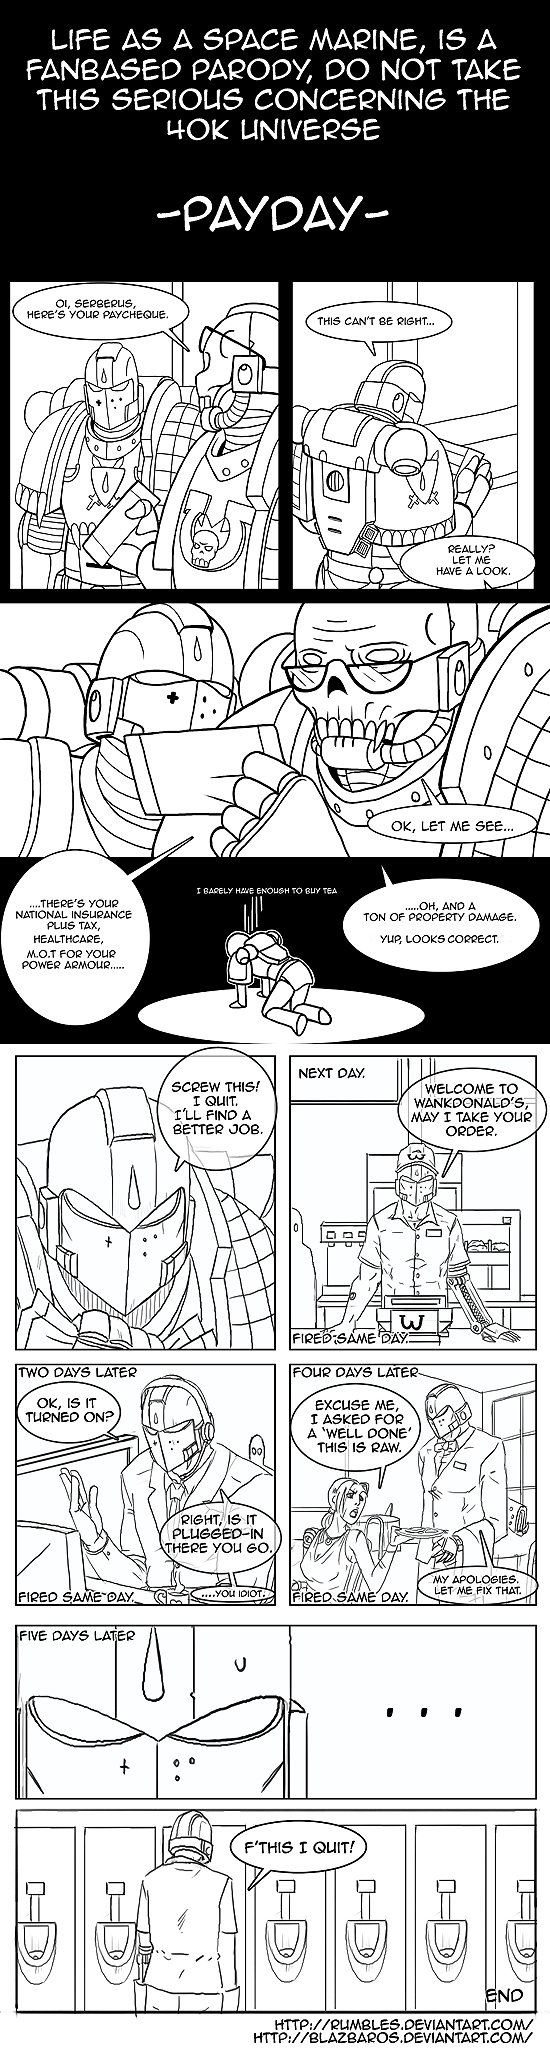 [Humour 40K] Collection d'images humoristiques - Page 37 Life_as_a_space_marine___payday_by_rumbles-d5is4yi